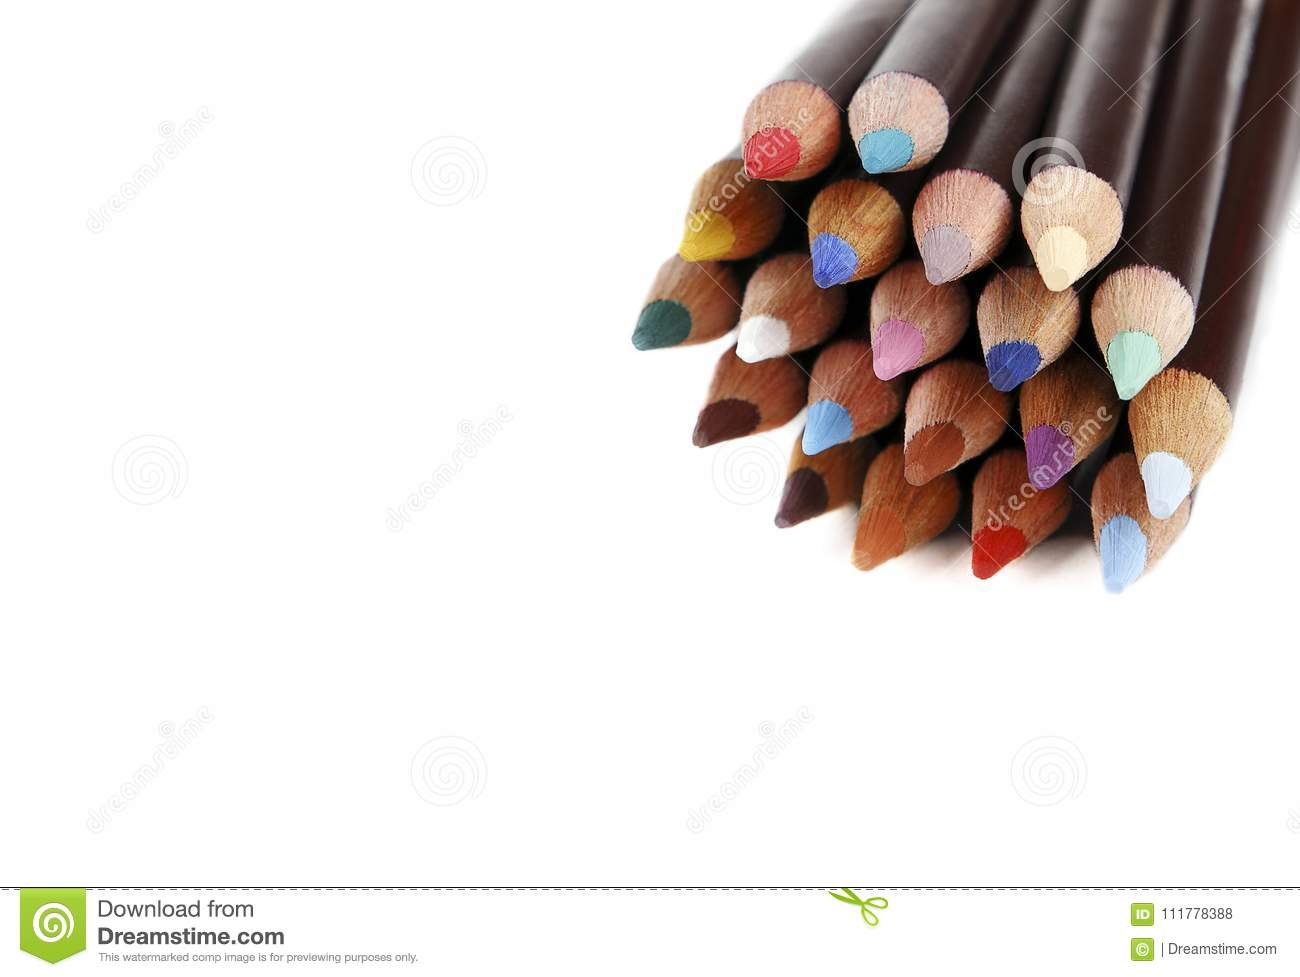 Color pencils with space for text, white background. Texture wood colored pencils. Colored pencils macro. DOF.